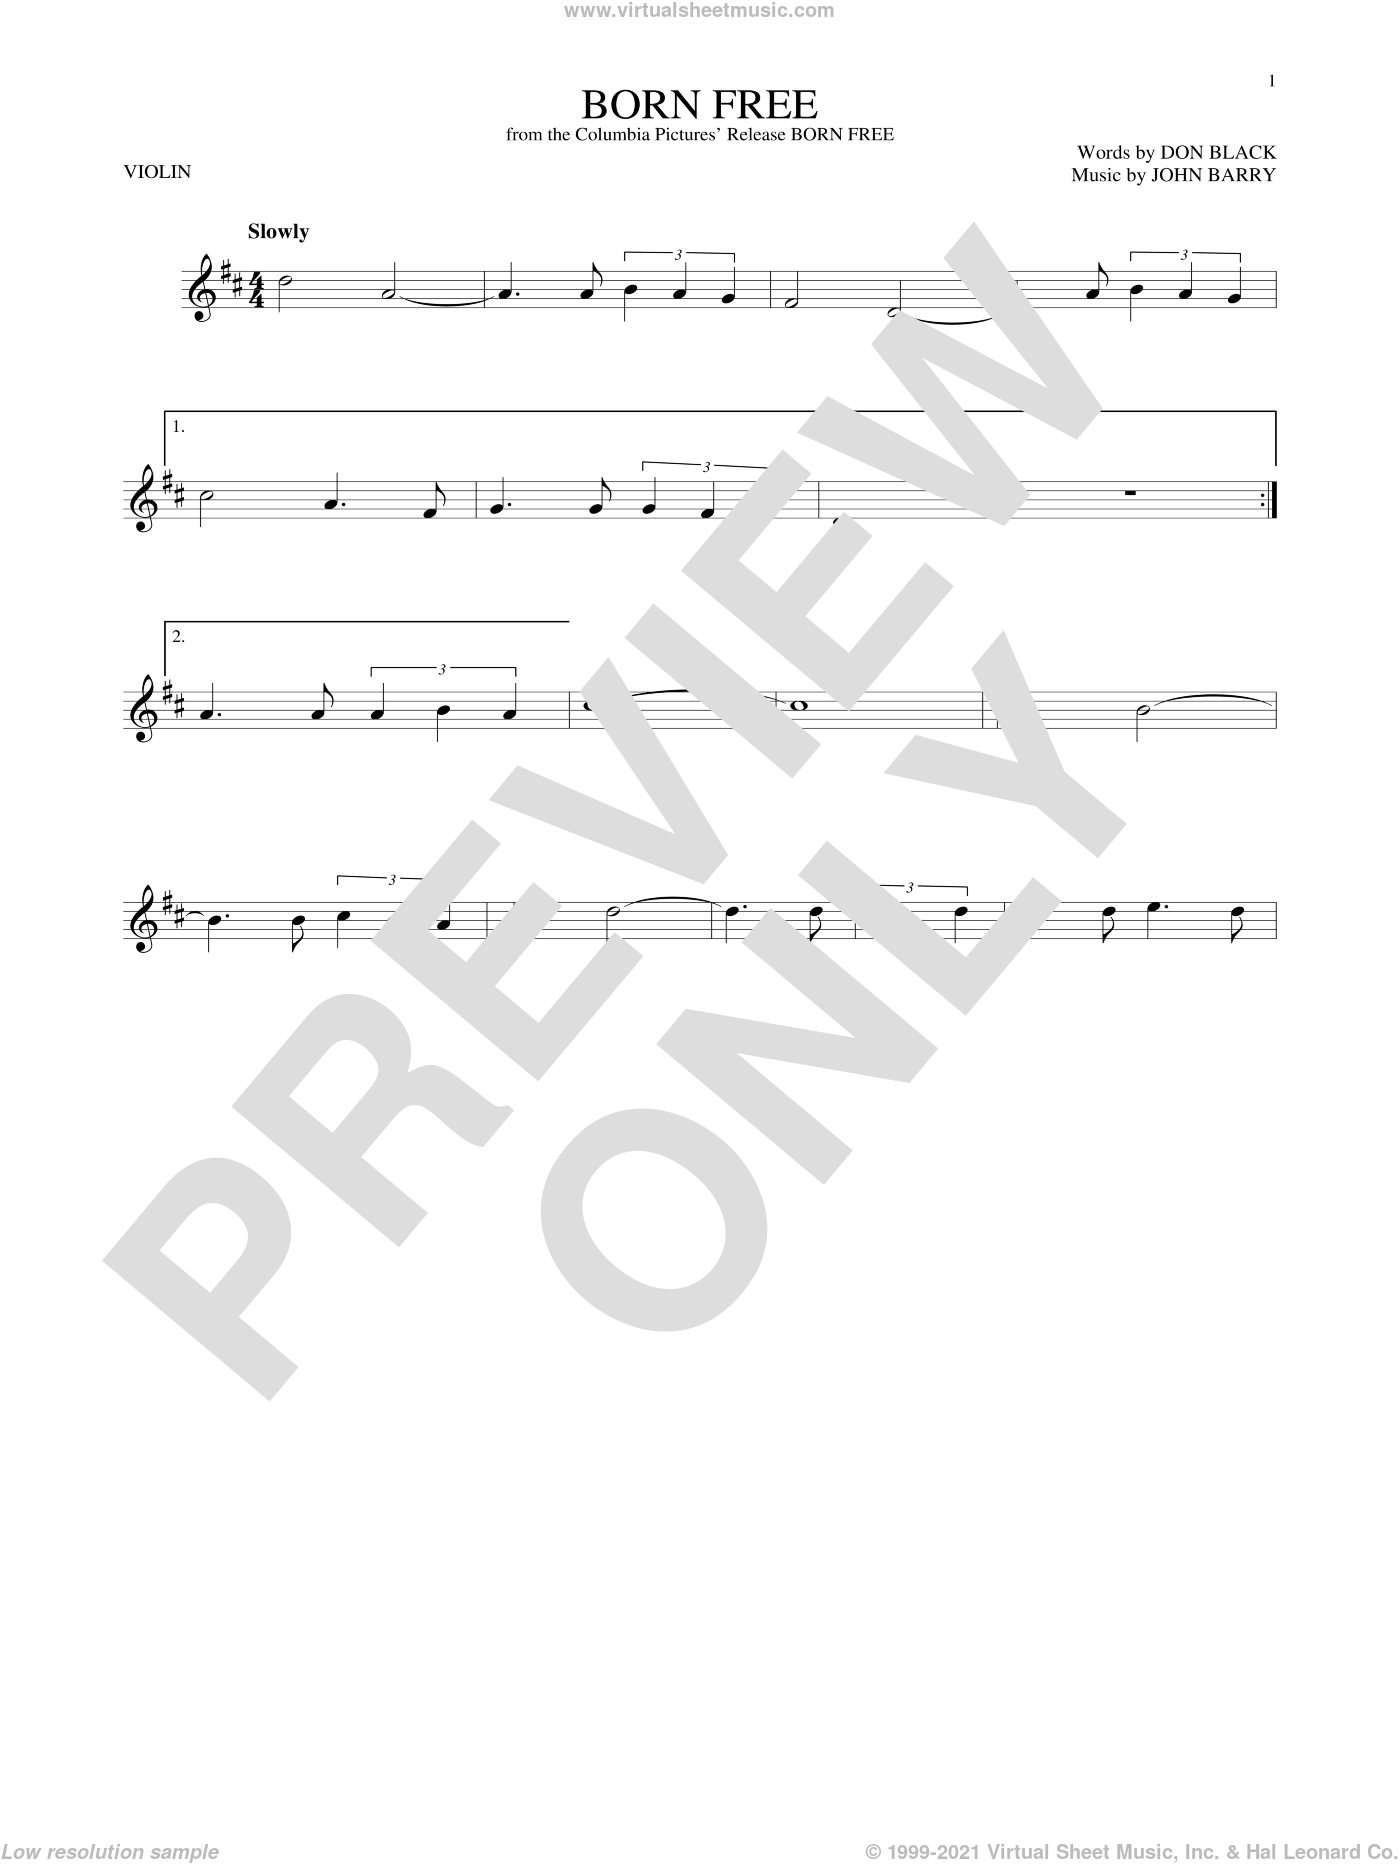 Born Free sheet music for violin solo by Don Black, Roger Williams and John Barry. Score Image Preview.